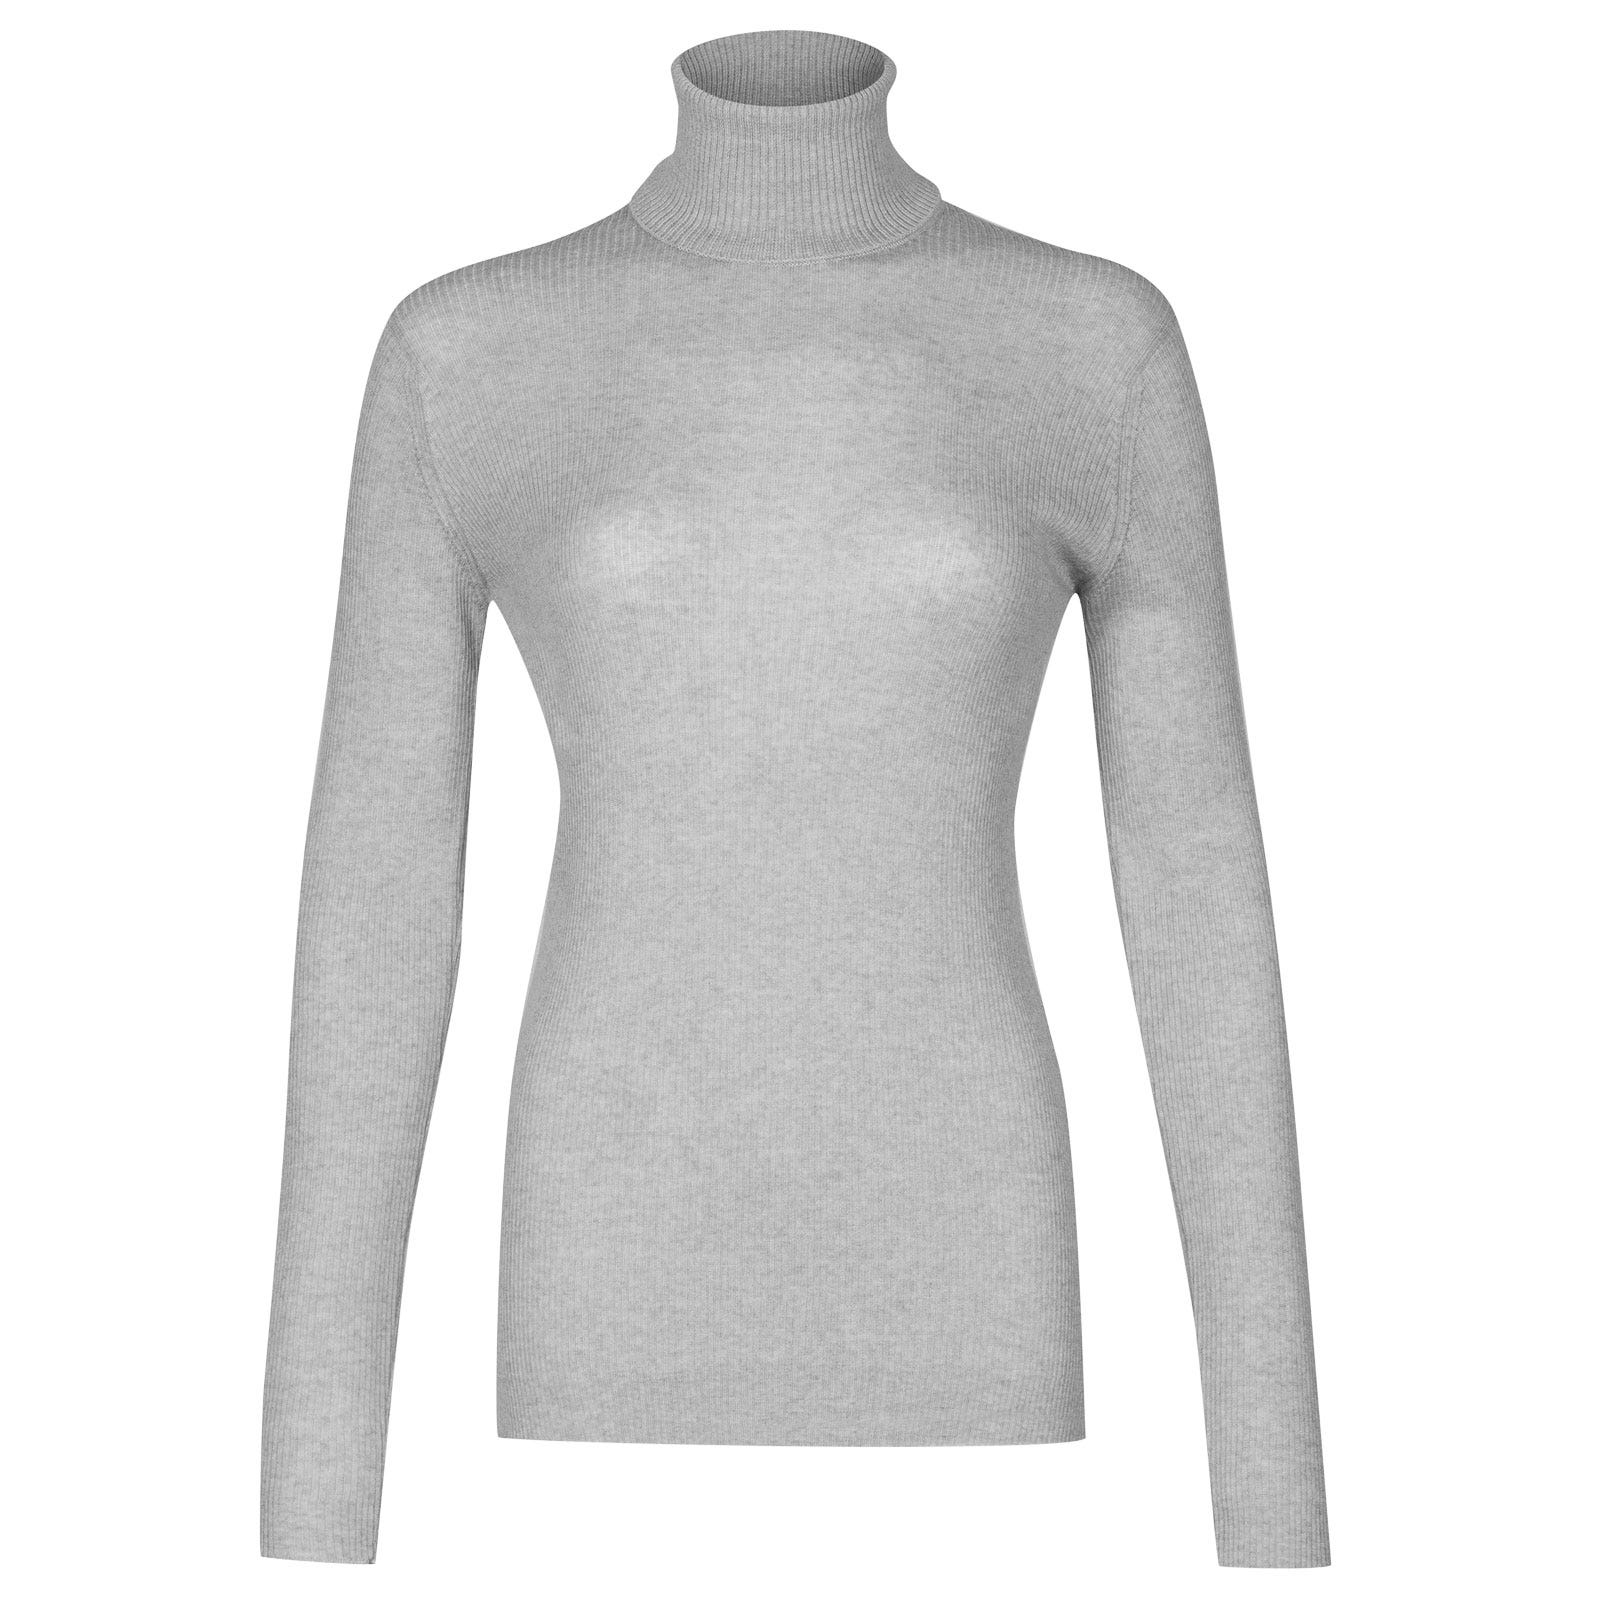 John Smedley massey Merino Wool Sweater in Bardot Grey-M